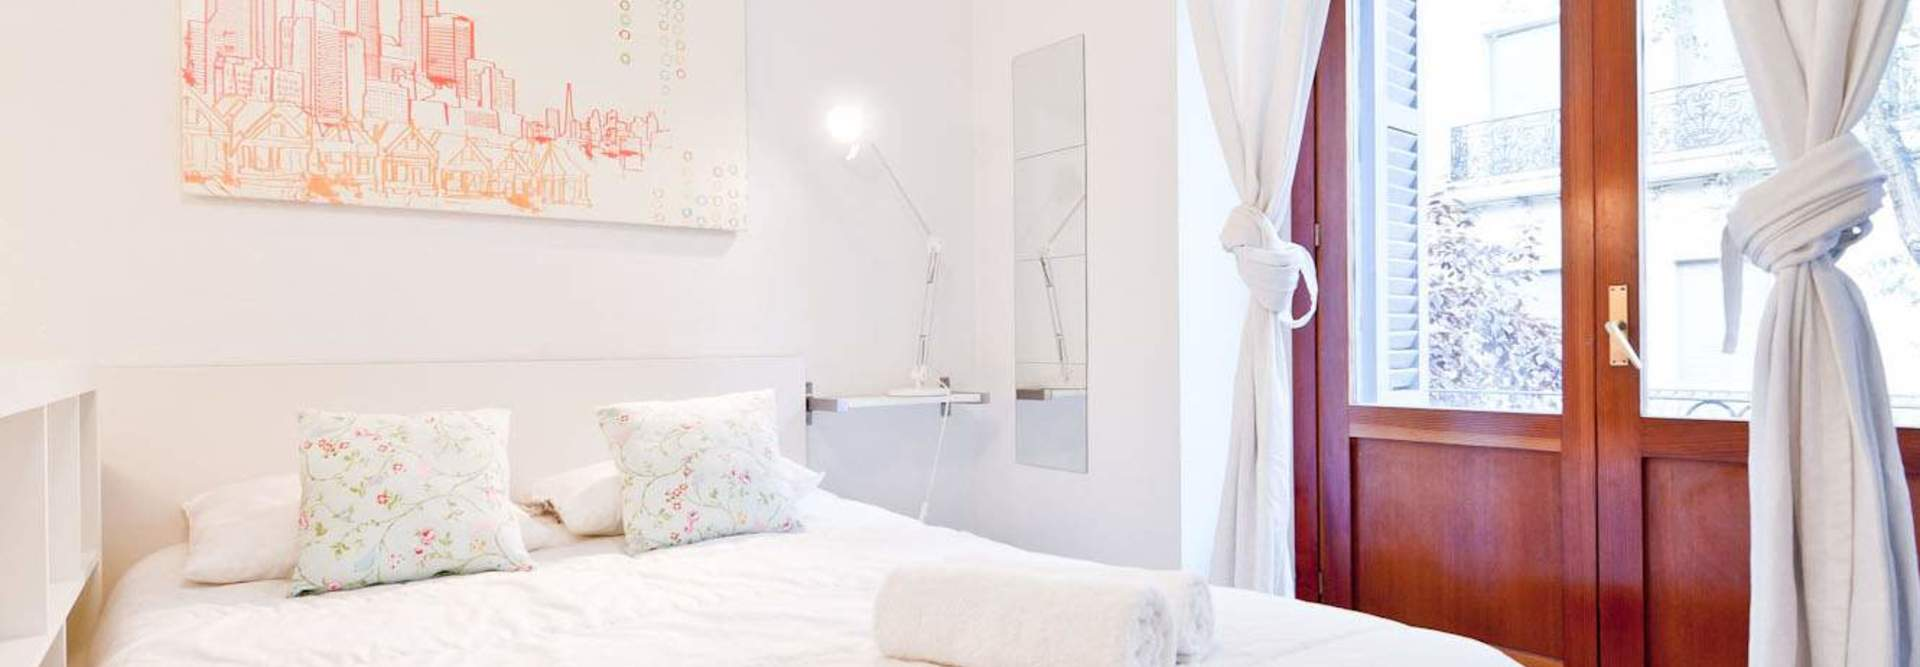 Home alquiler apartamento madrid centro mad4rent  25